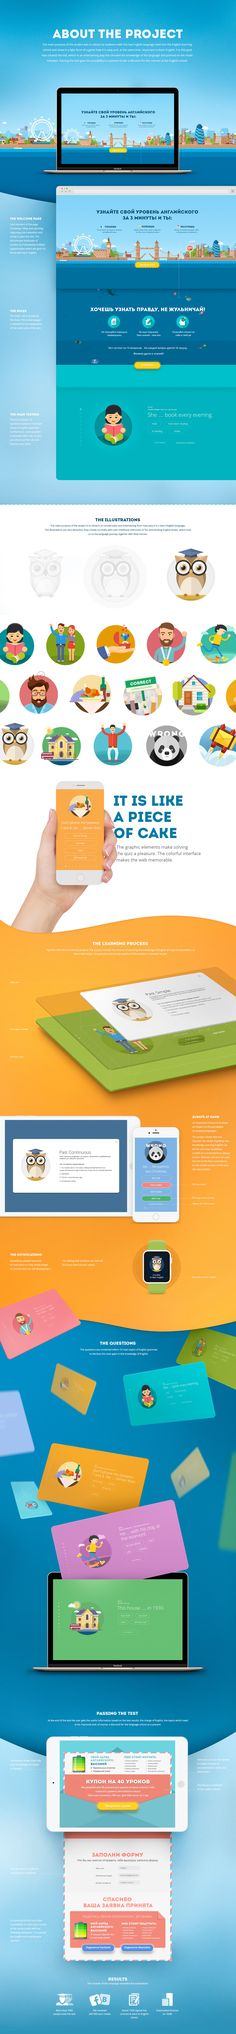 Master english | Marketing case on Behance